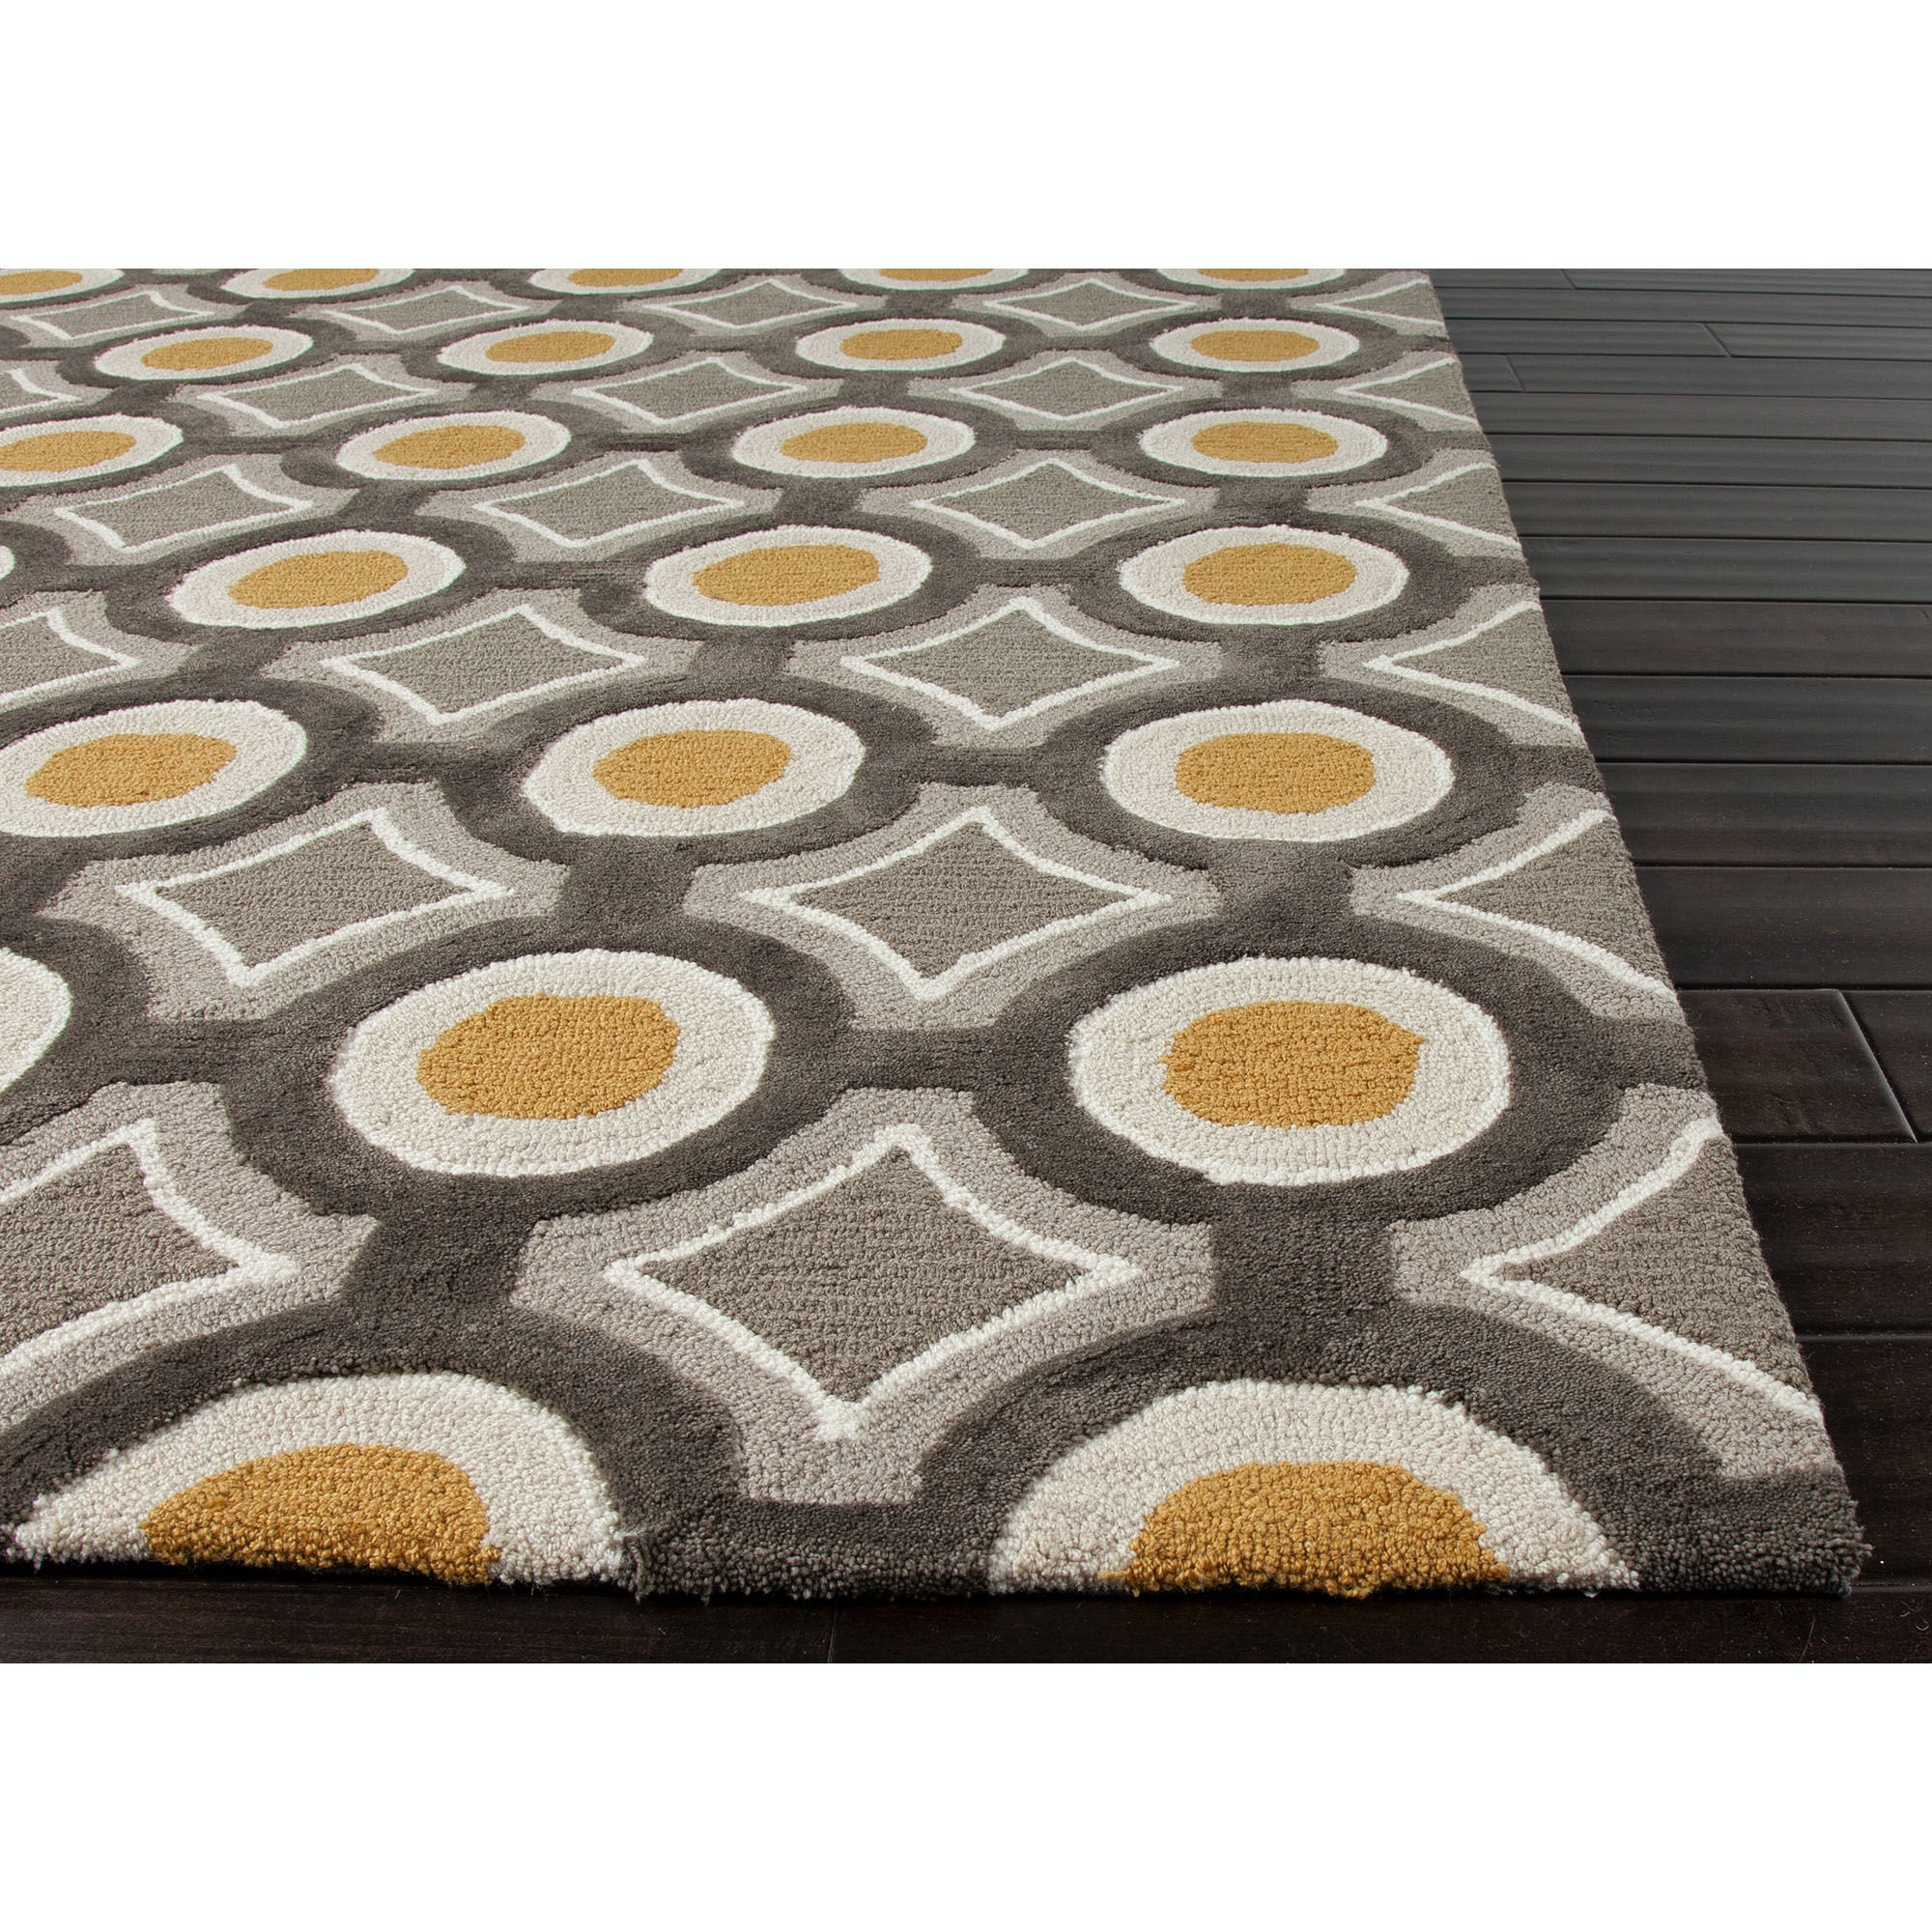 Jaipur Rugs Hand Tufted Geometric Pattern Polyester Gray/Yellow Area Rug  BR31